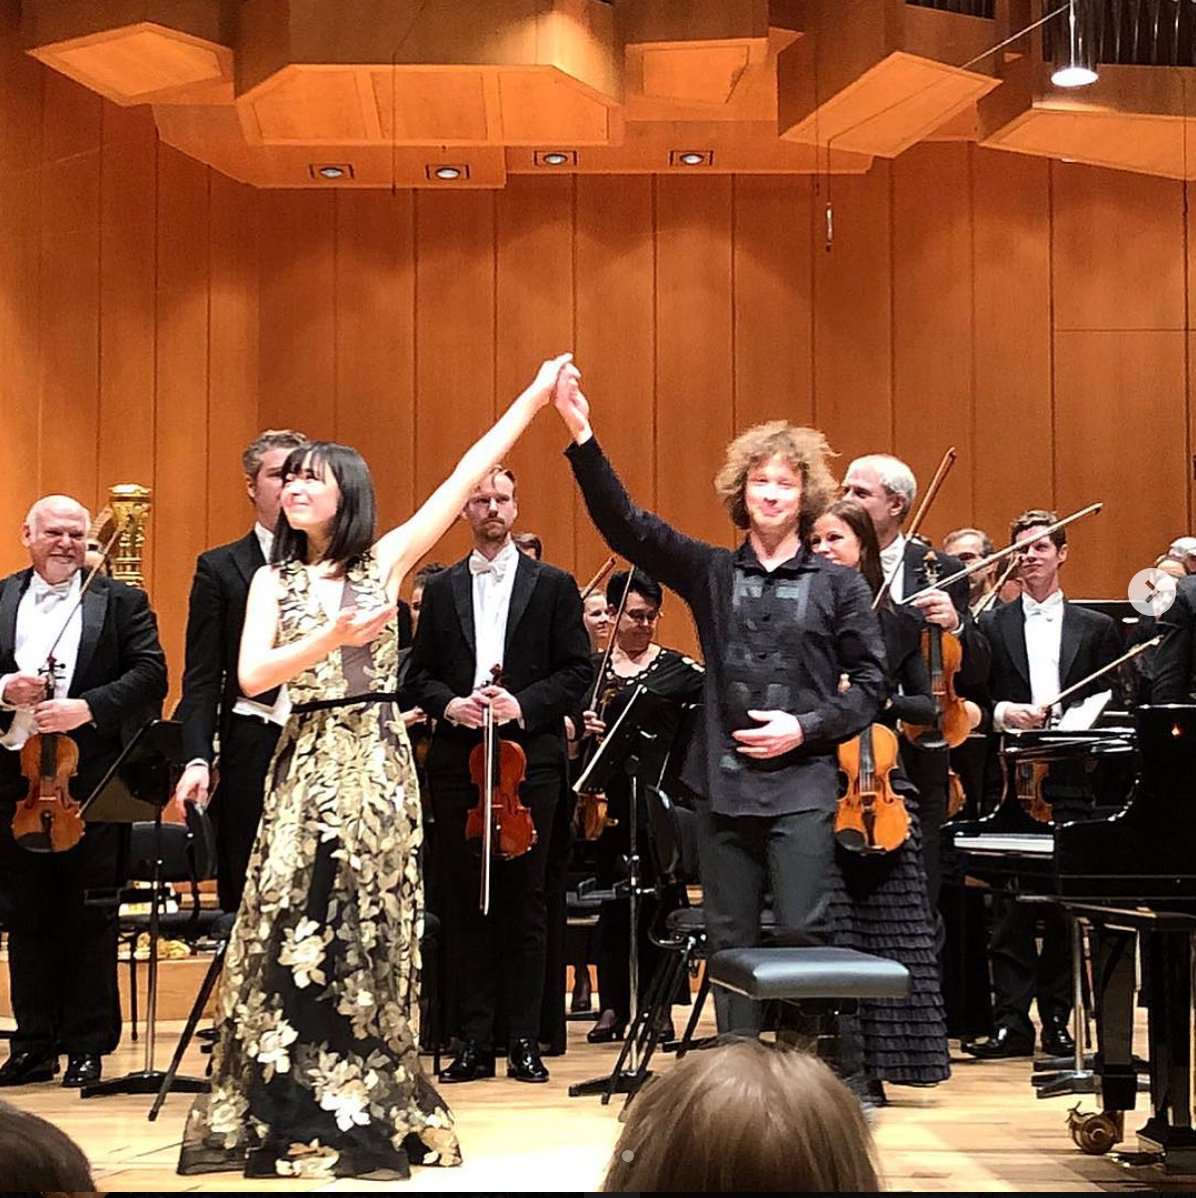 "Bachtrack: ""Playful sound worlds with Alice Sara Ott and the Gothenburg Symphony in Munich"" alicesaraott.com/concert-review… @GbgSymfoniker #ontour photo: #Instagram /@alicesaraott_official"